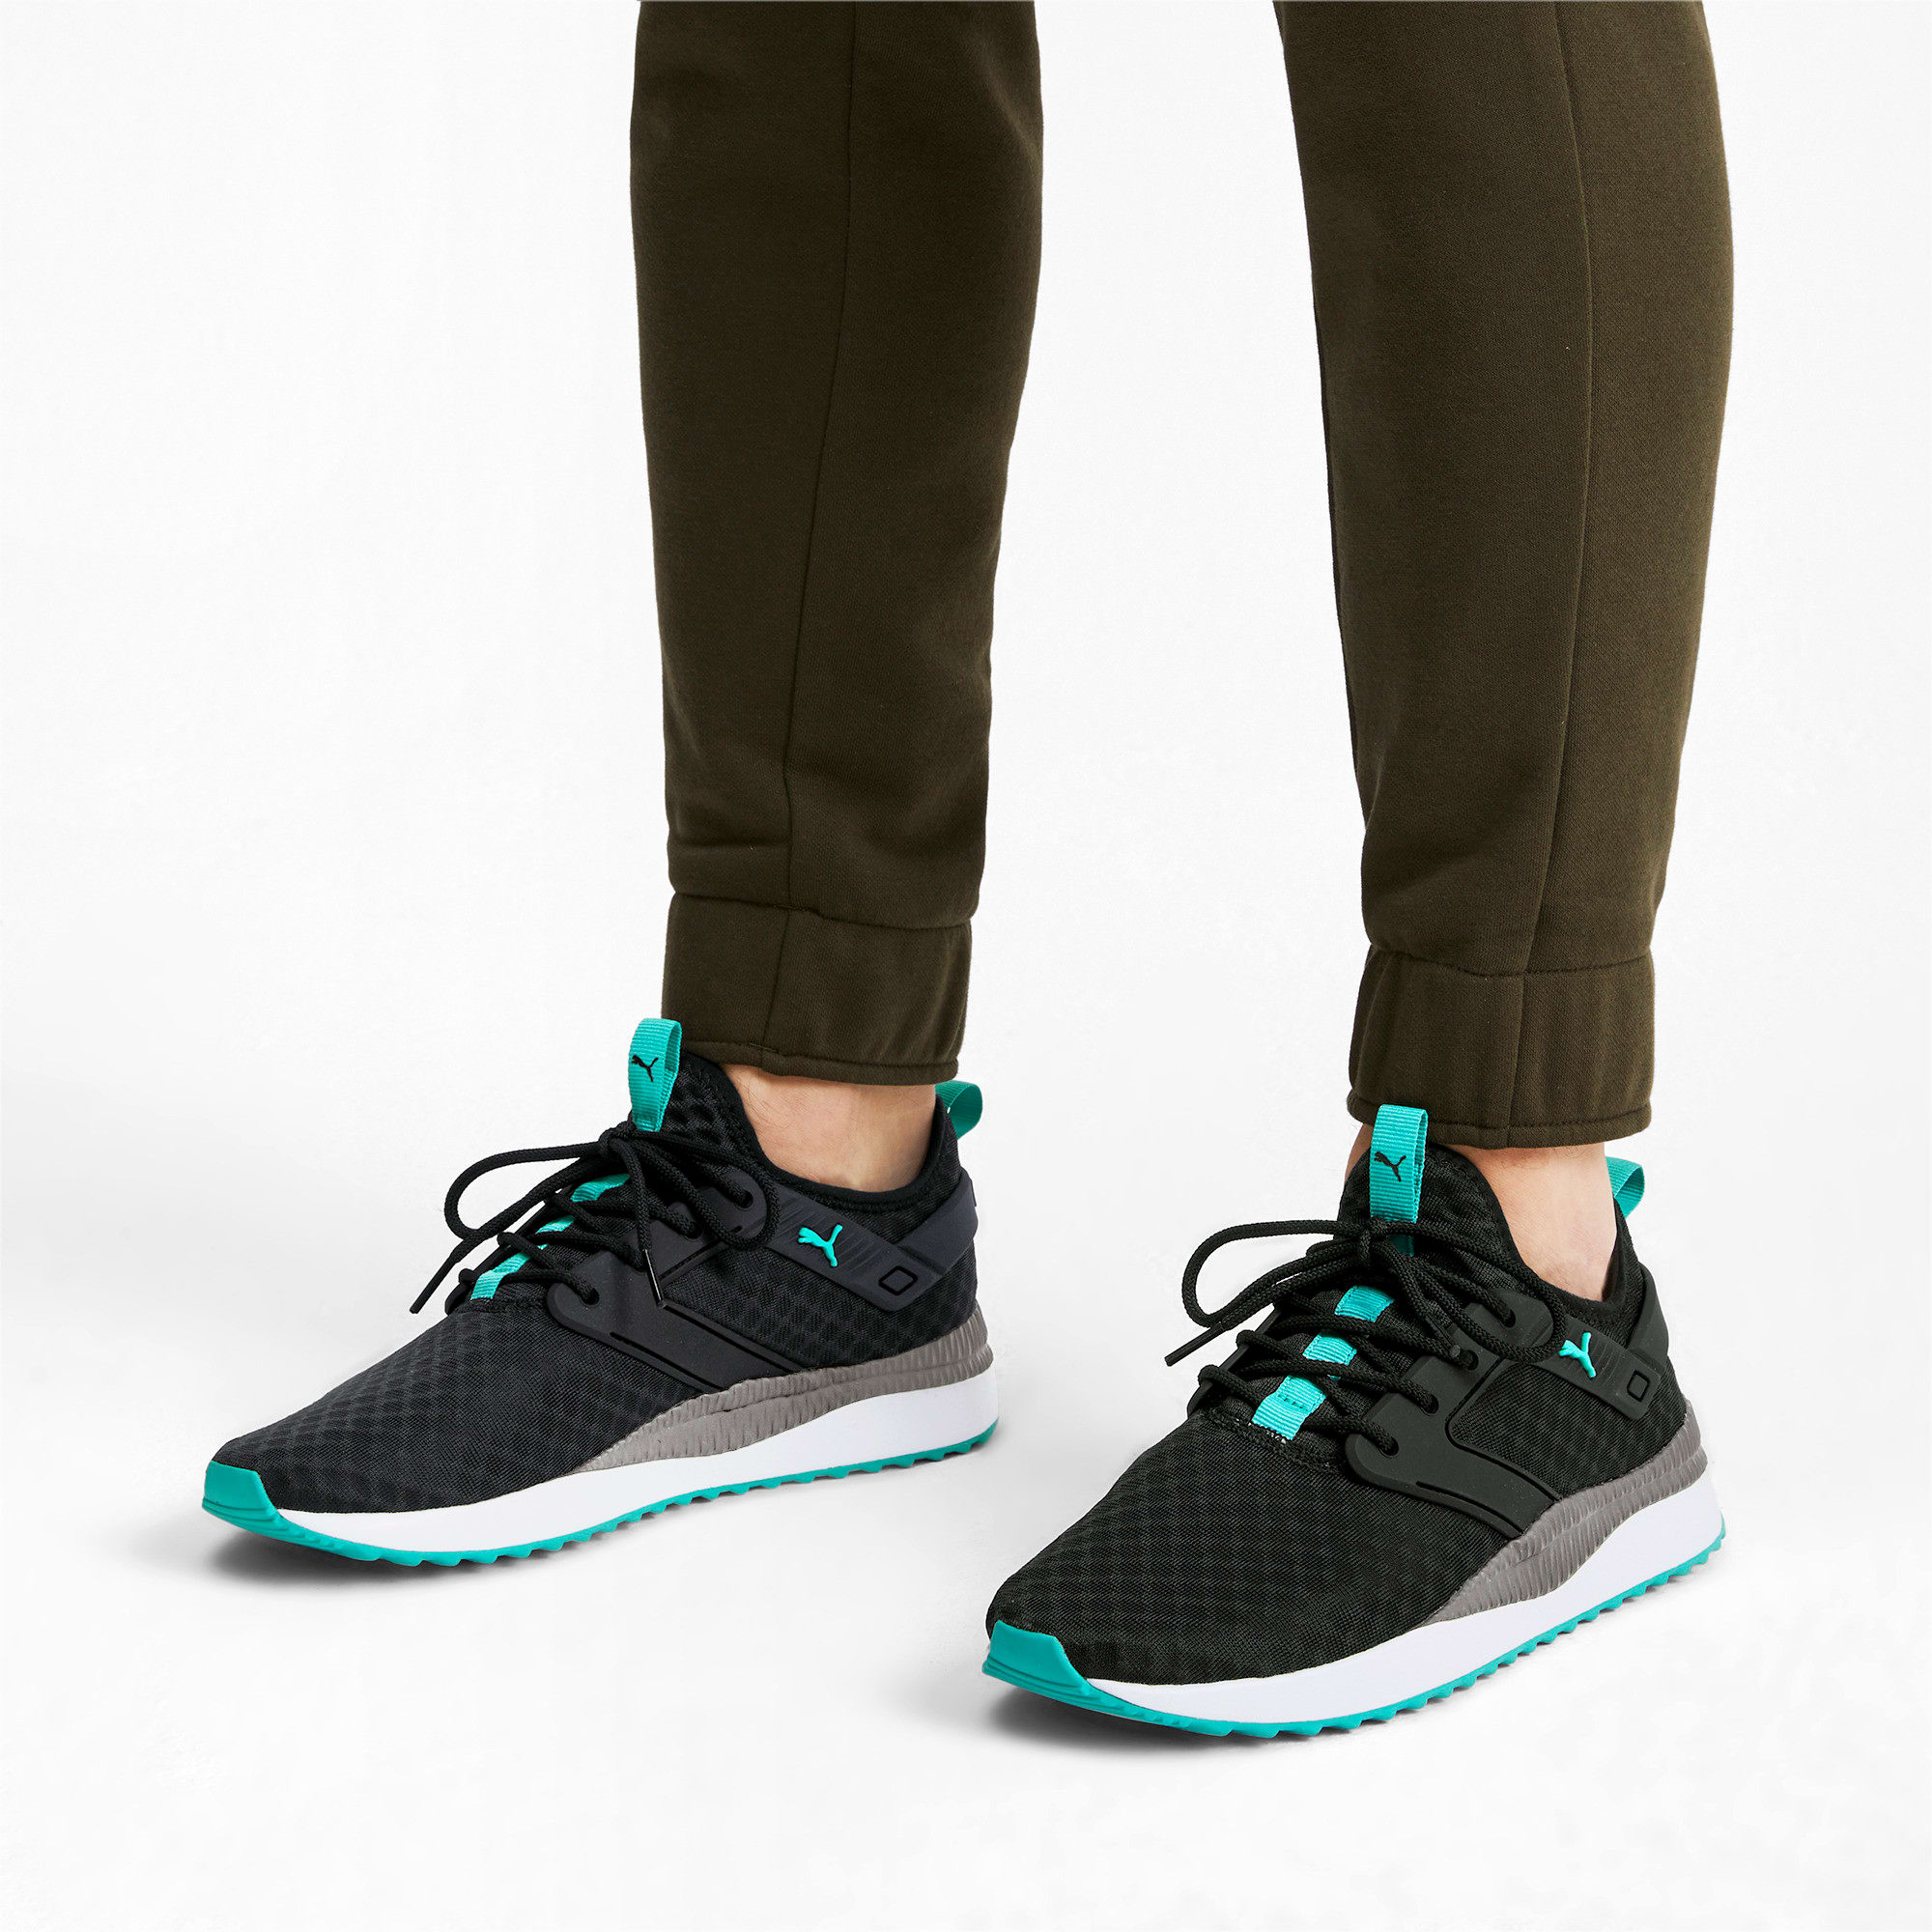 Thumbnail 2 of Pacer Next Excel Core Sneakers, Puma Black-Blue Turquoise, medium